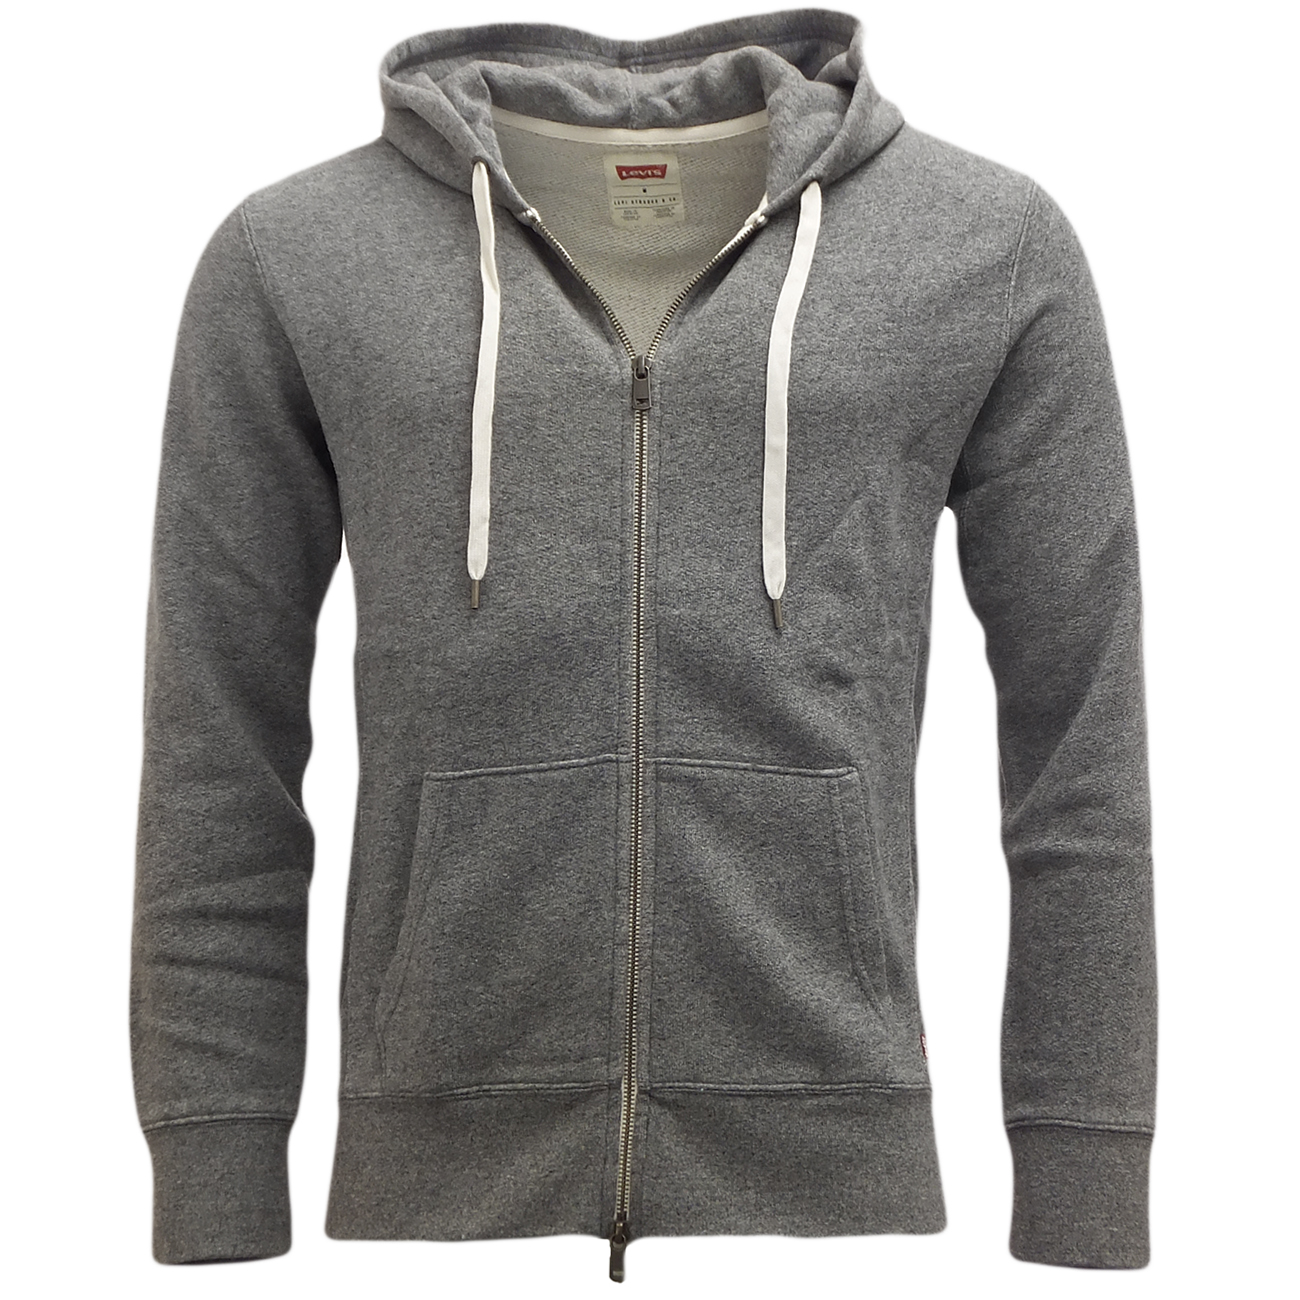 Find great deals on eBay for Mens Hoodies XXL in Men's Sweats and Hoodies. Shop with confidence.